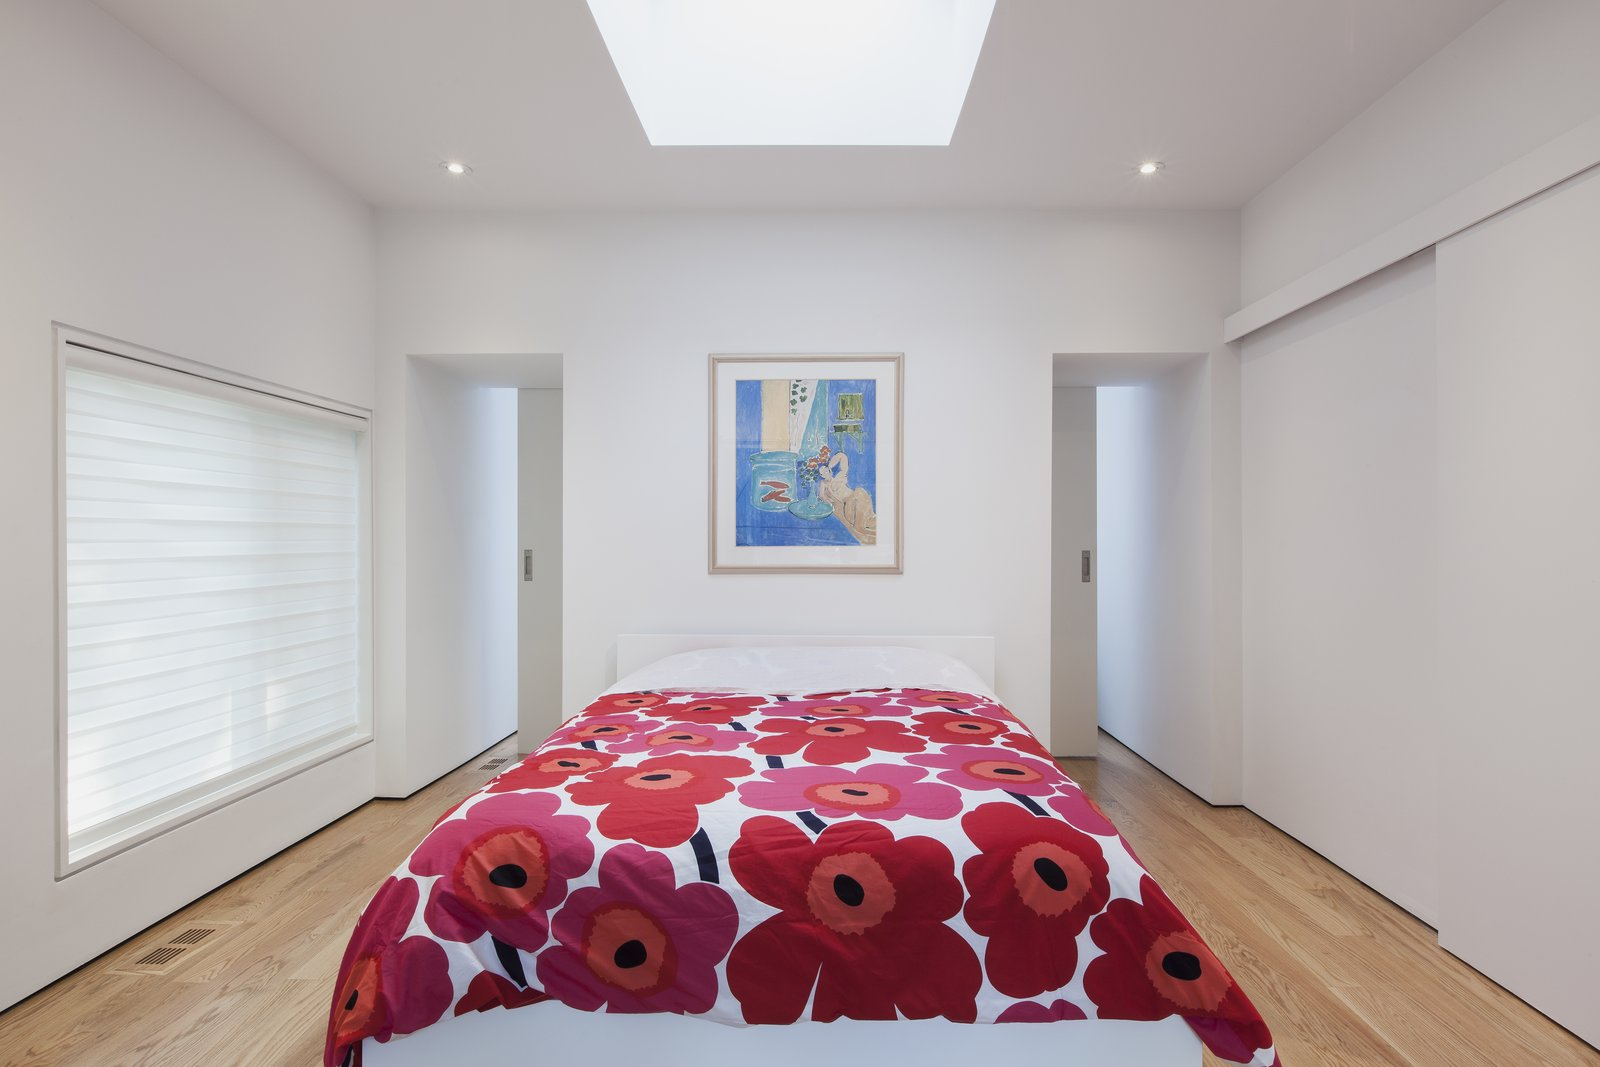 From the top of the staircase, the master bedroom is accessed via sliding doors (on the right), while a pair of pocket doors lead to a walk-in closet that overlooks the living room. A skylight with an operable shade provides natural light when desired.